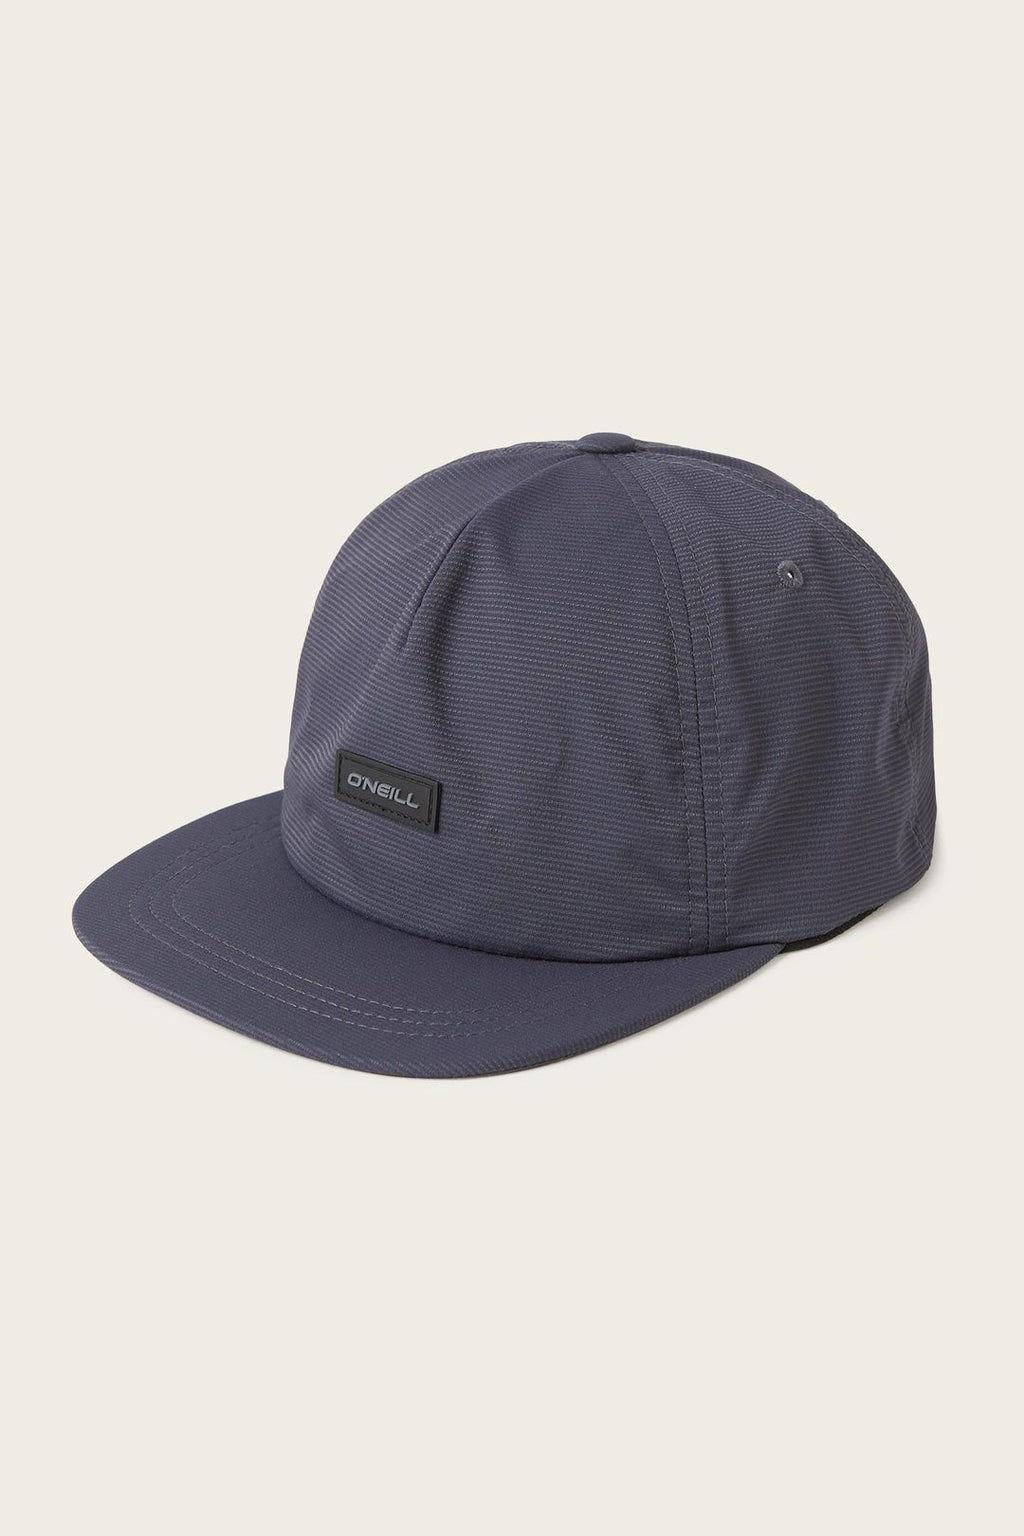 O'Neill Unstructured Hybrid Hat